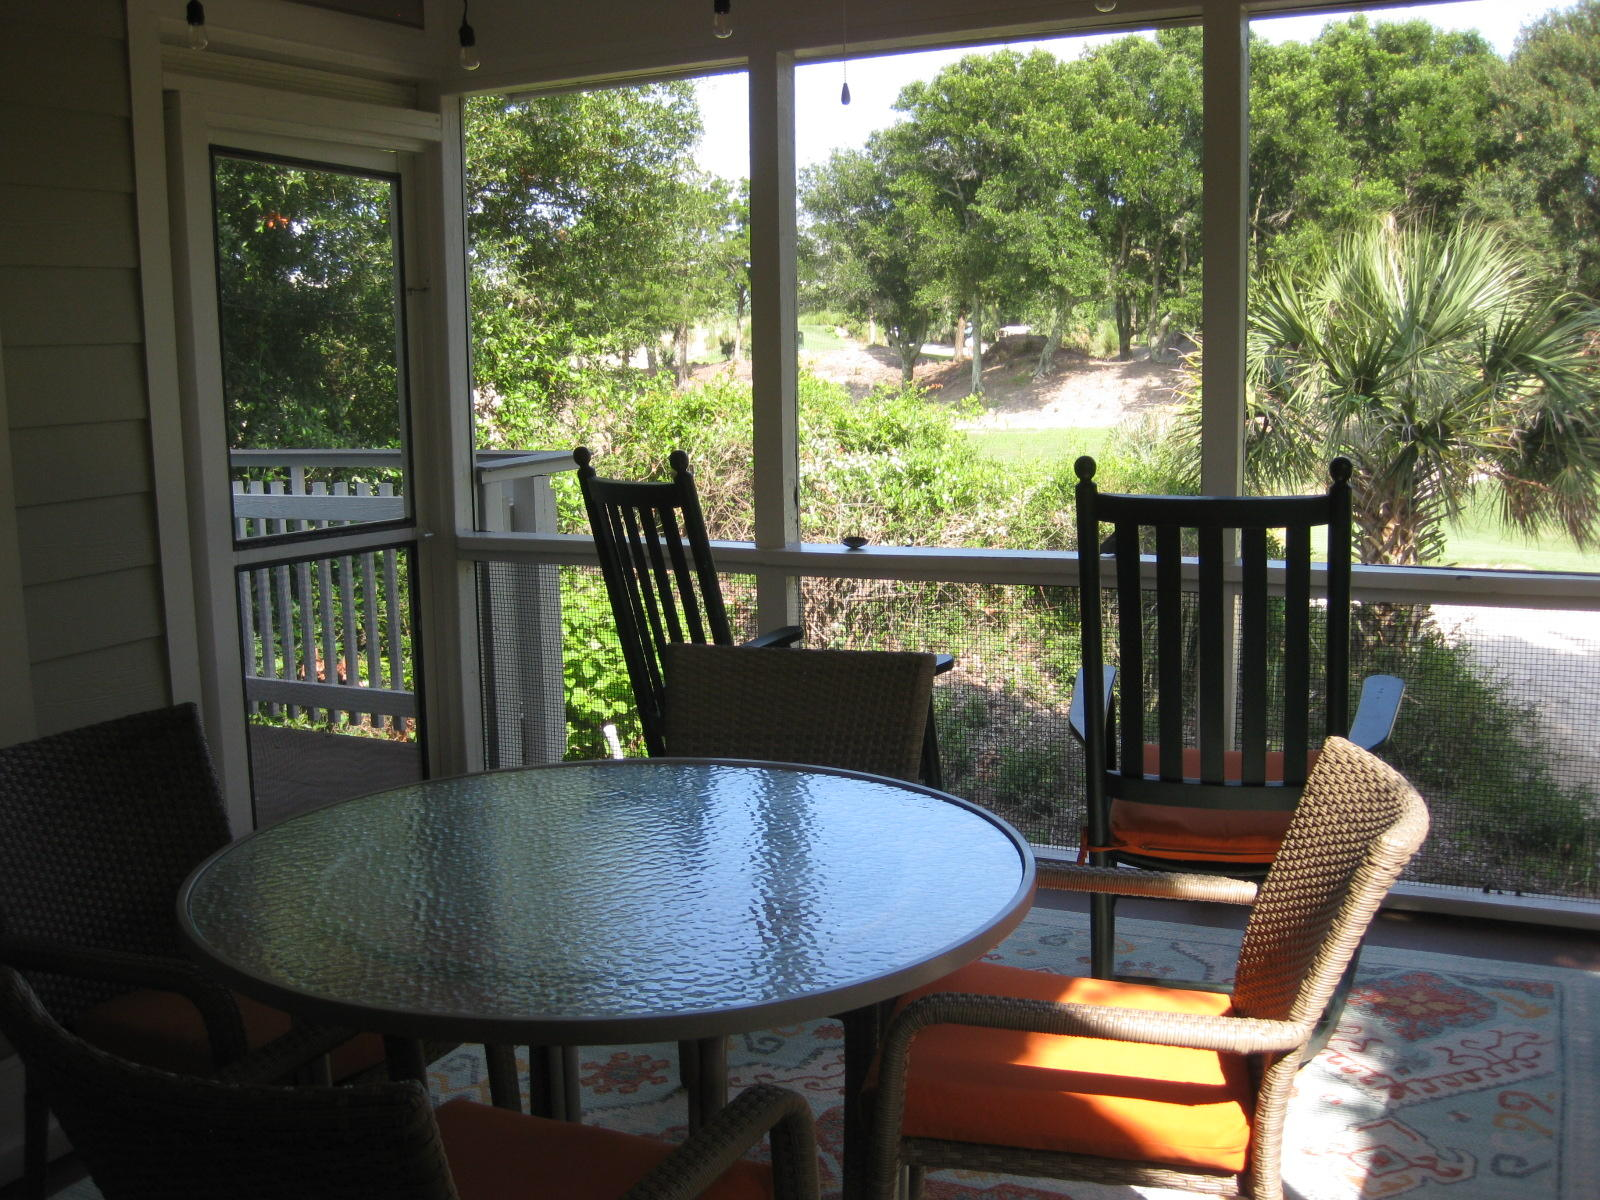 Fairway Villas Homes For Sale - 25 Fairway Dunes (1/6 Share), Isle of Palms, SC - 27